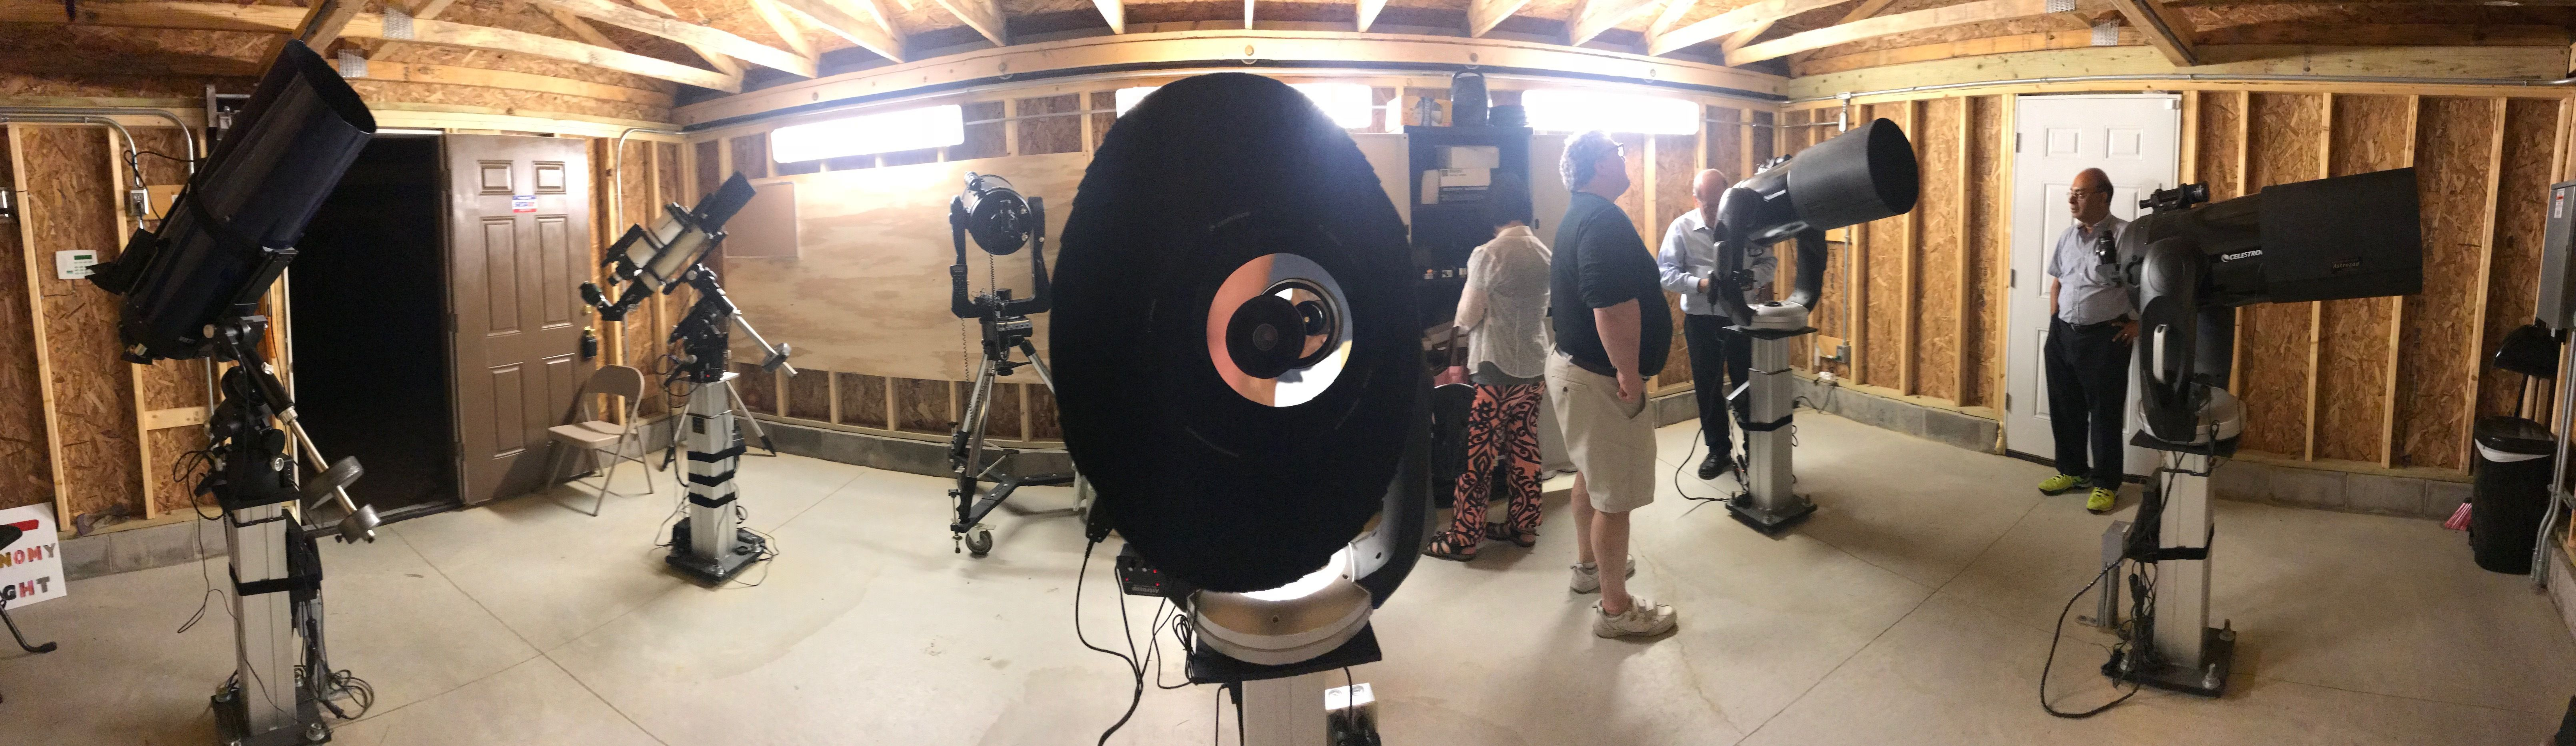 Fairlawn Rotary Observatory Interior -- Photo credit: Summit County Astronomy Club